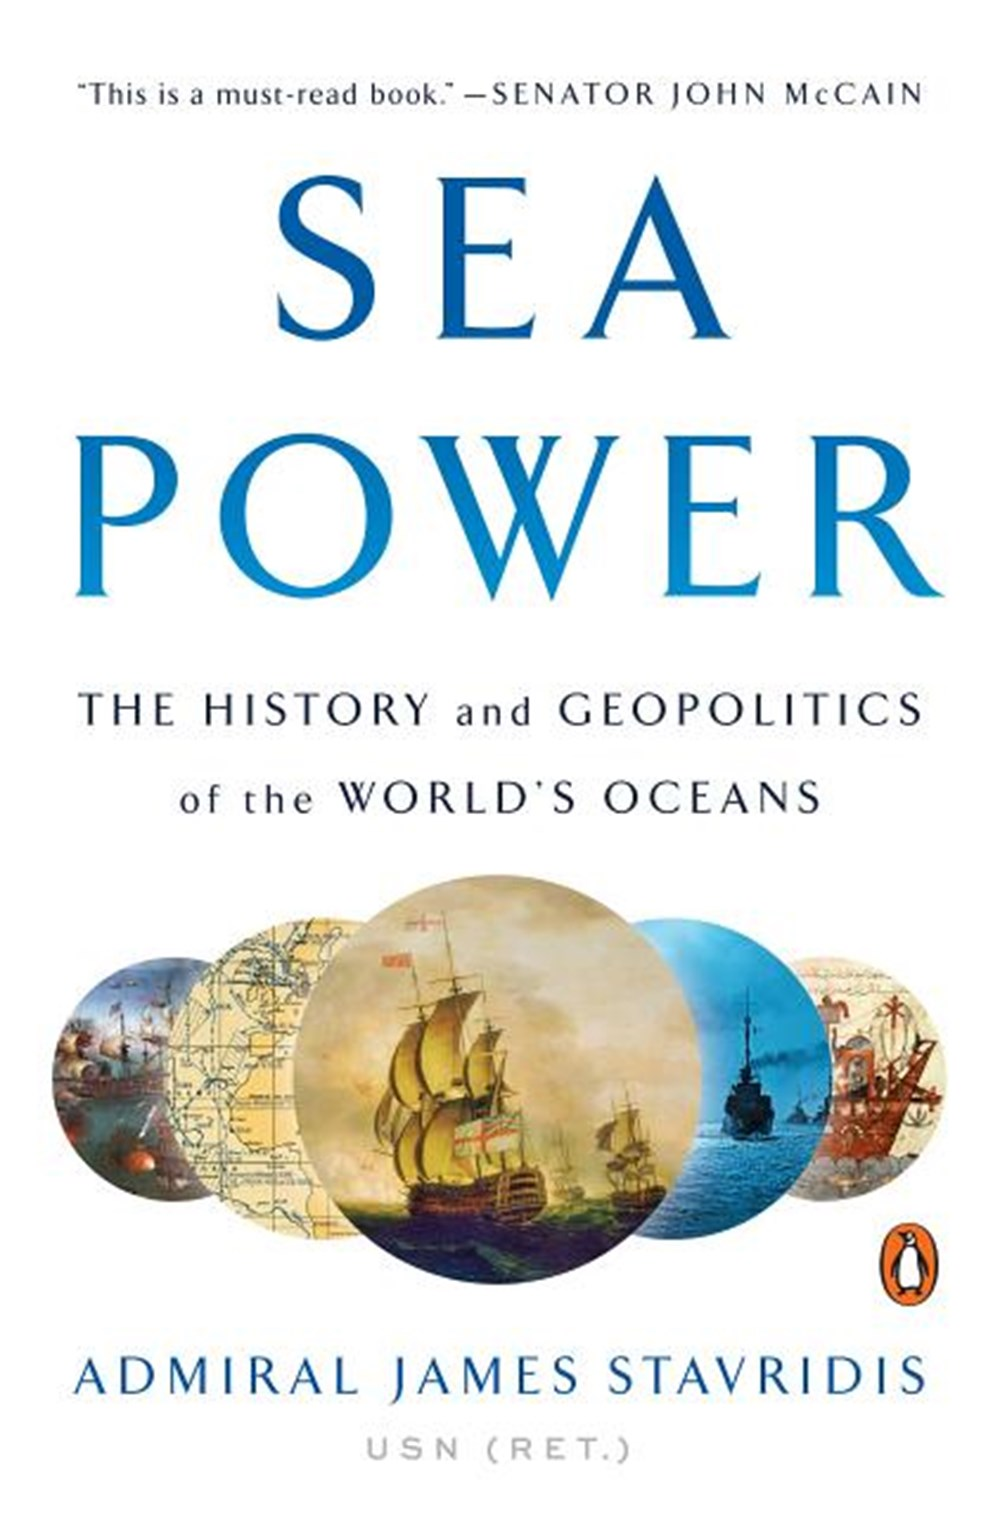 Sea Power The History and Geopolitics of the World's Oceans